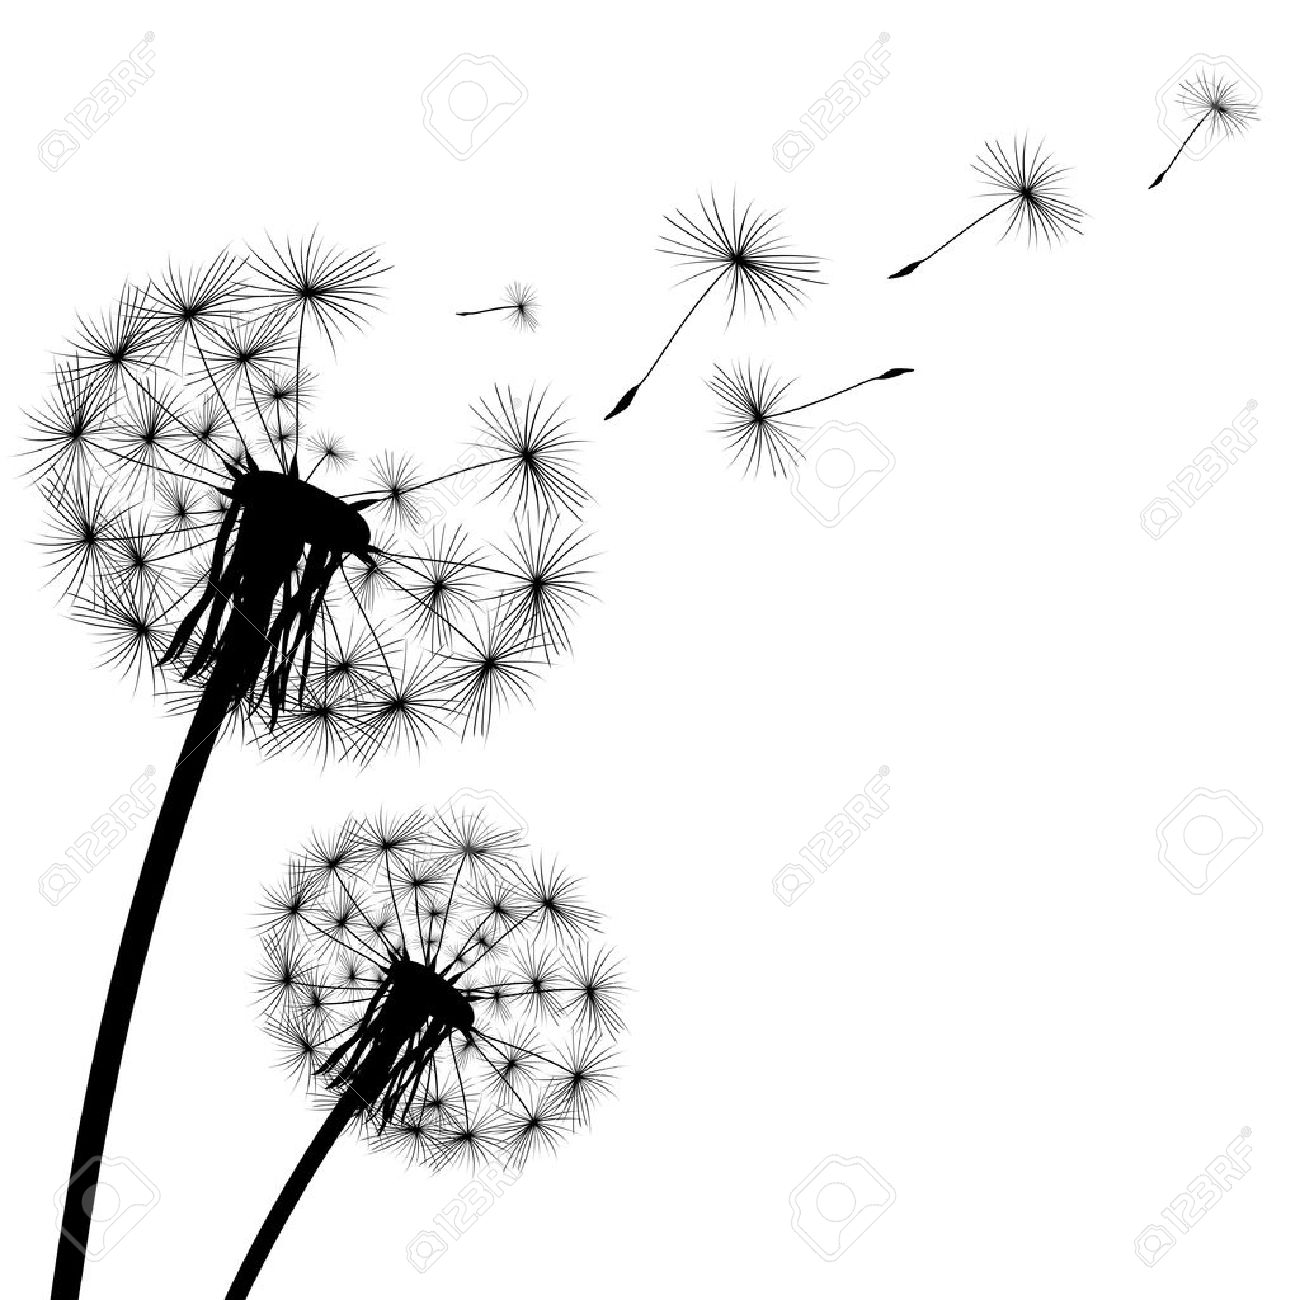 black silhouette with flying dandelion buds on a white background - 50512874